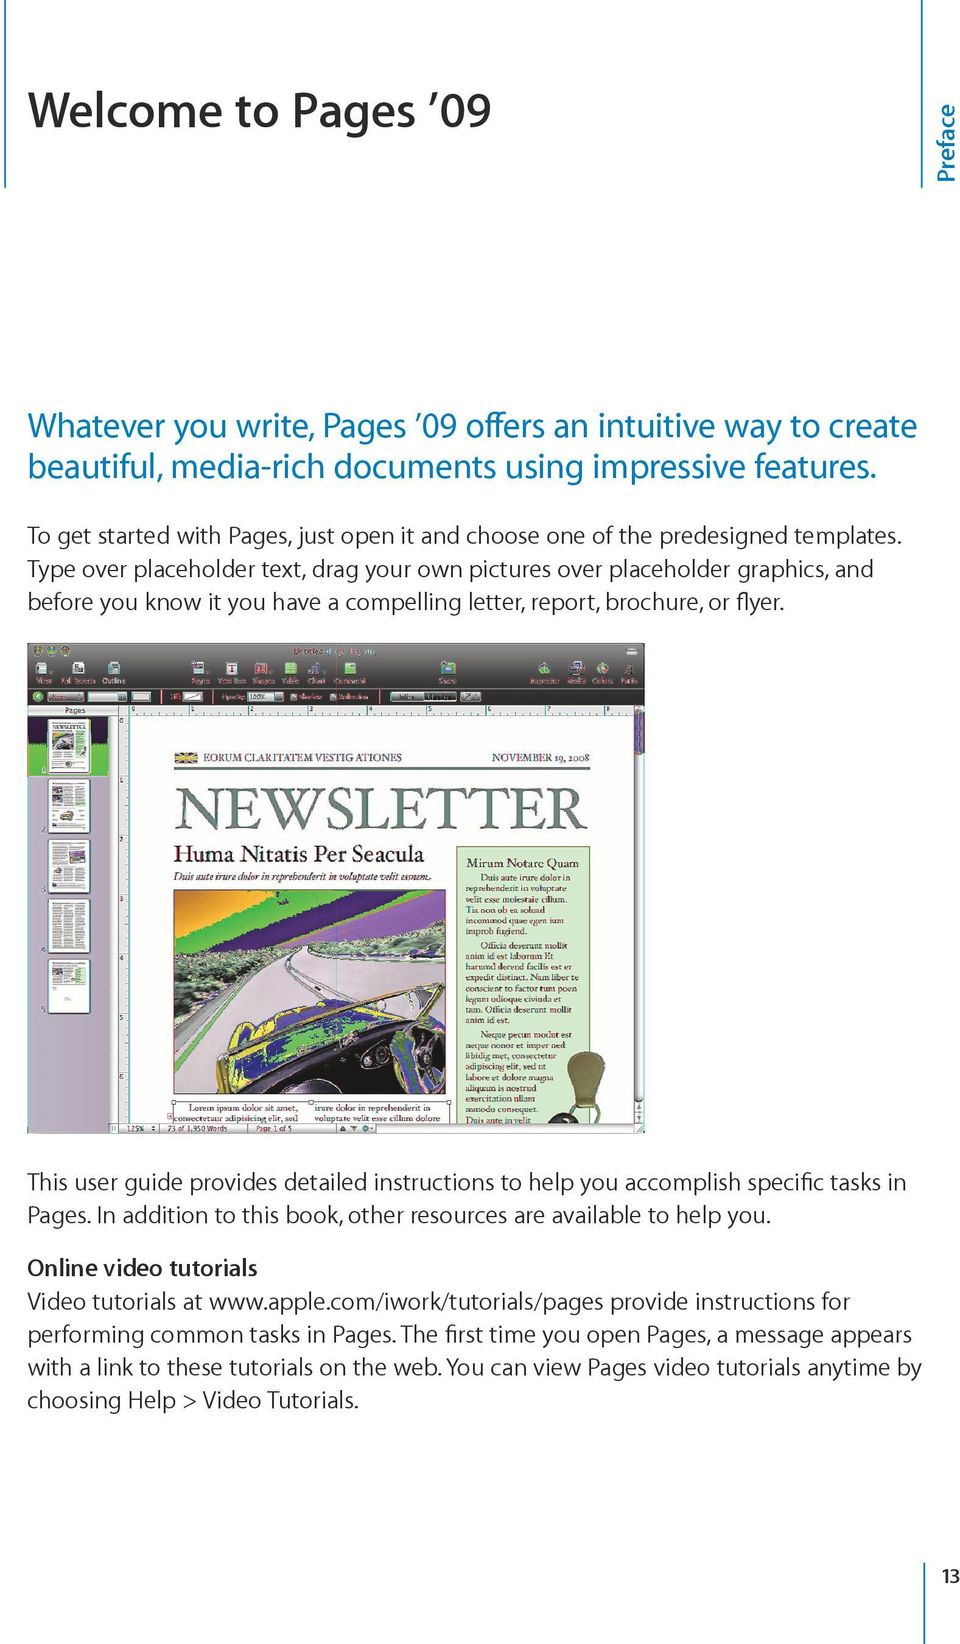 Type over placeholder text, drag your own pictures over placeholder graphics, and before you know it you have a compelling letter, report, brochure, or flyer.